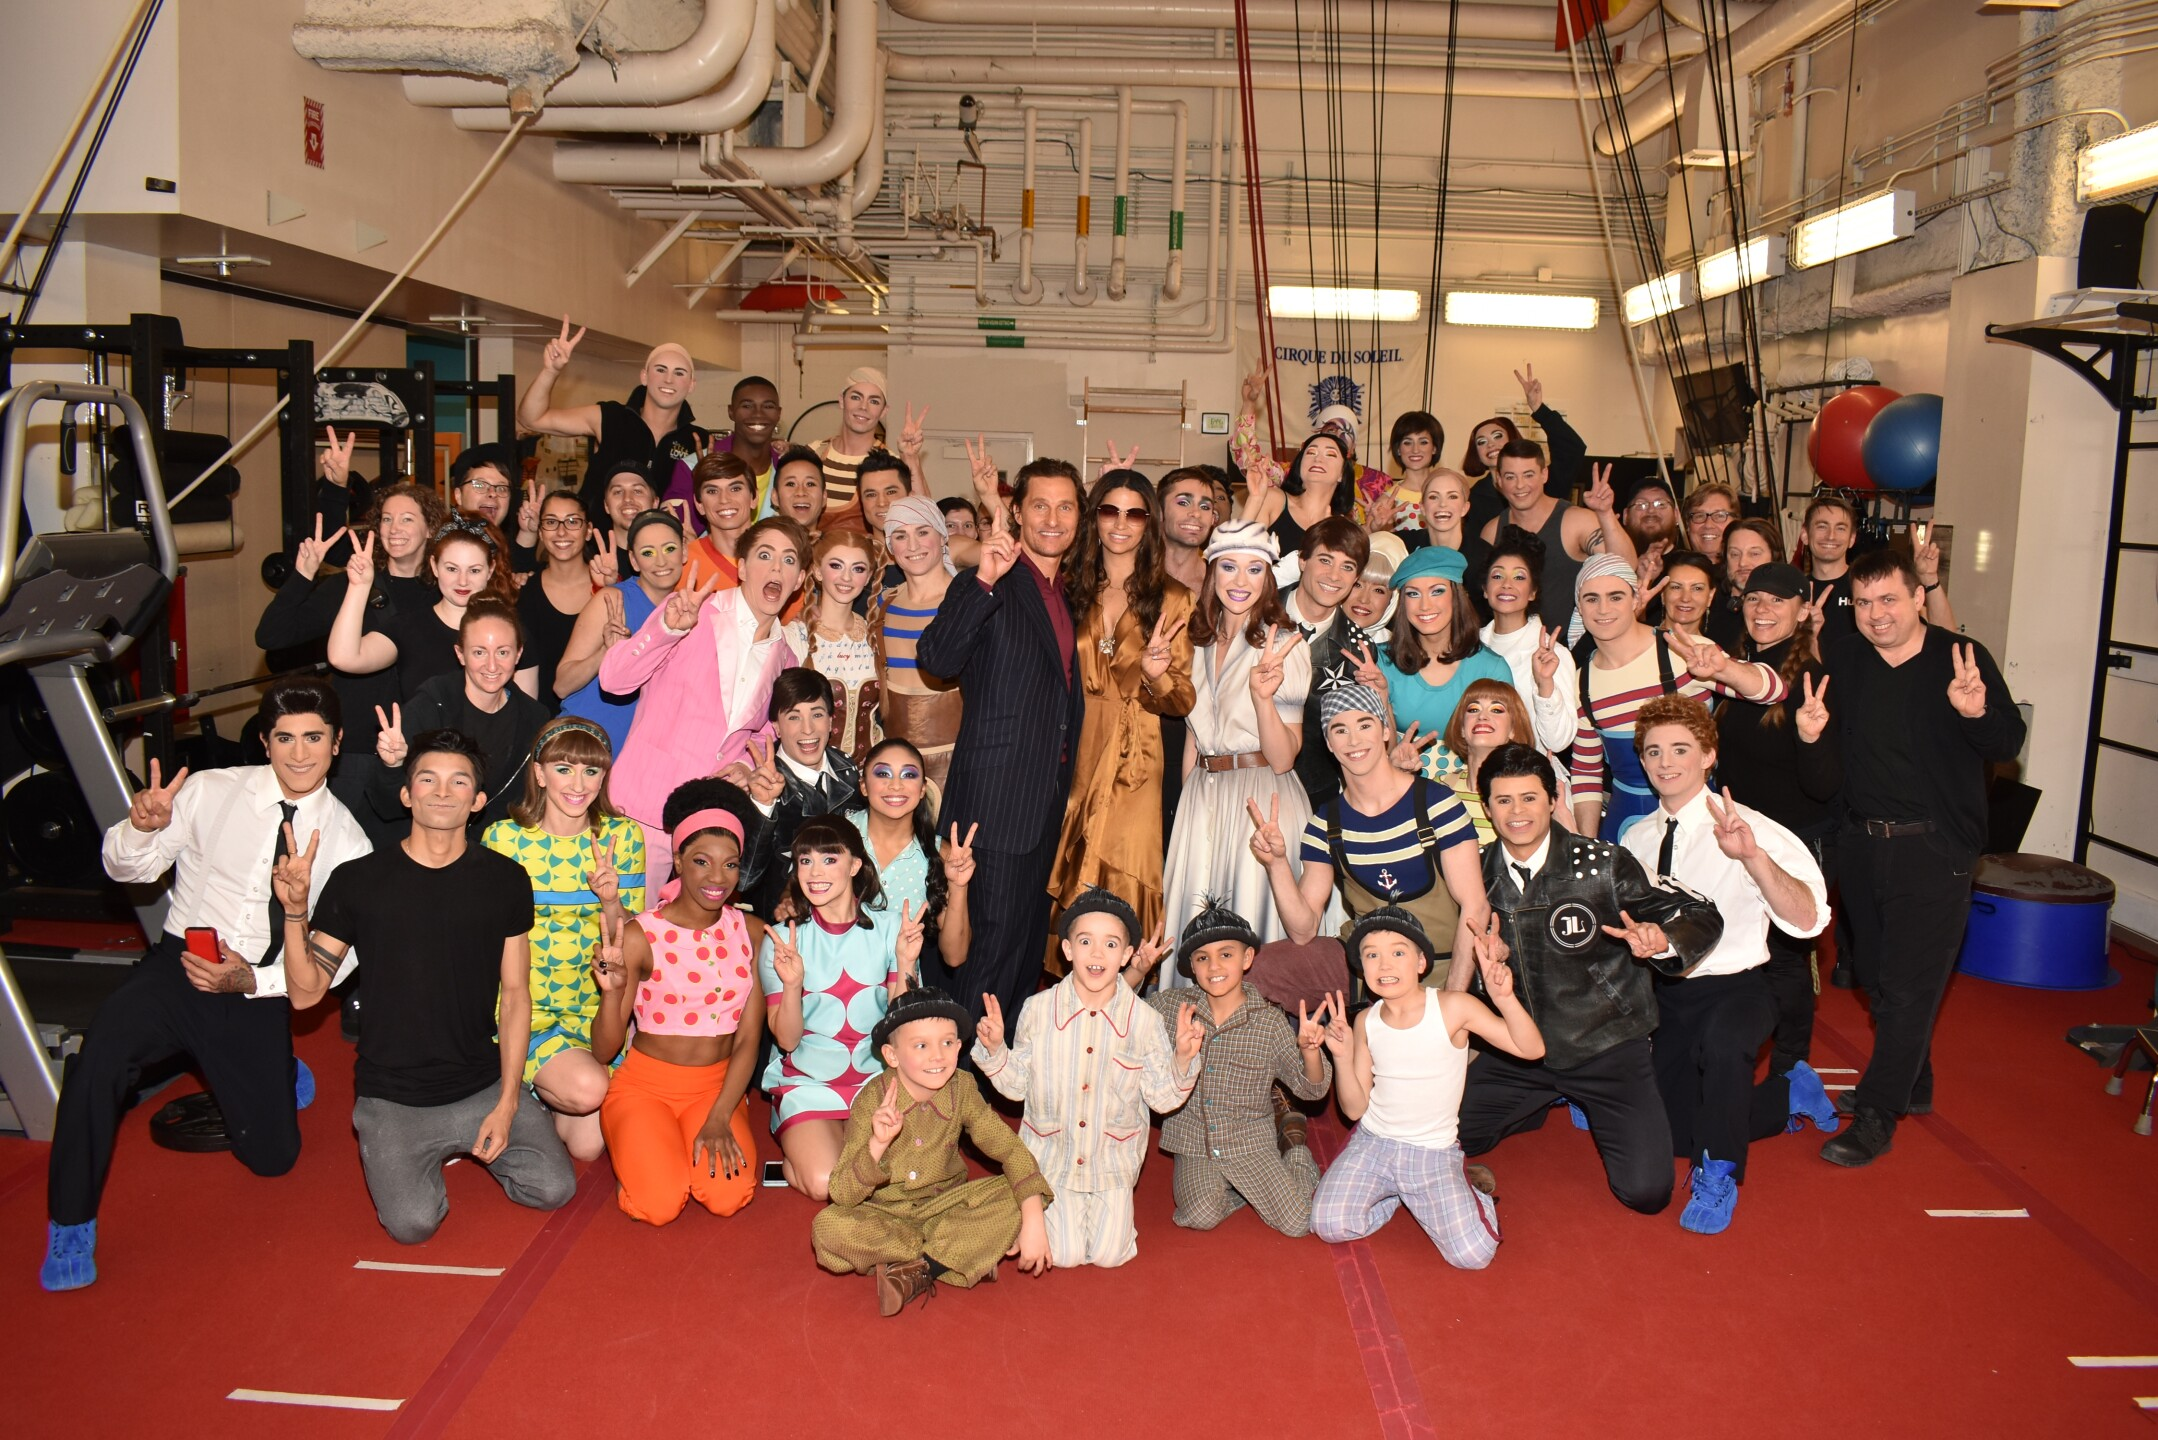 Matthew McConaughey and Camila Alves Backstage with the Cast at LOVE by Cirque du Soleil, Jan. 18, 2020.jpg